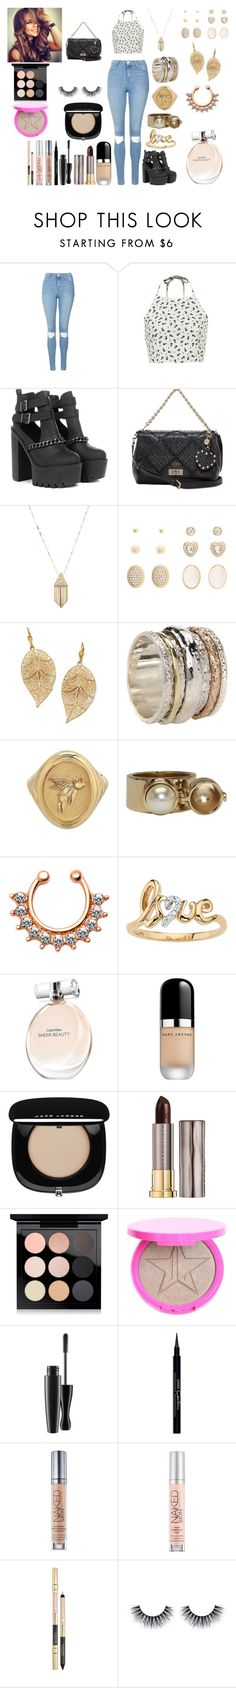 """""""Untitled #736"""" by asiebenthaler ❤ liked on Polyvore featuring Topshop, GUESS, House of Harlow 1960, Charlotte Russe, Palm Beach Jewelry, MeditationRings, Maison Margiela, Calvin Klein, Marc Jacobs and Urban Decay"""